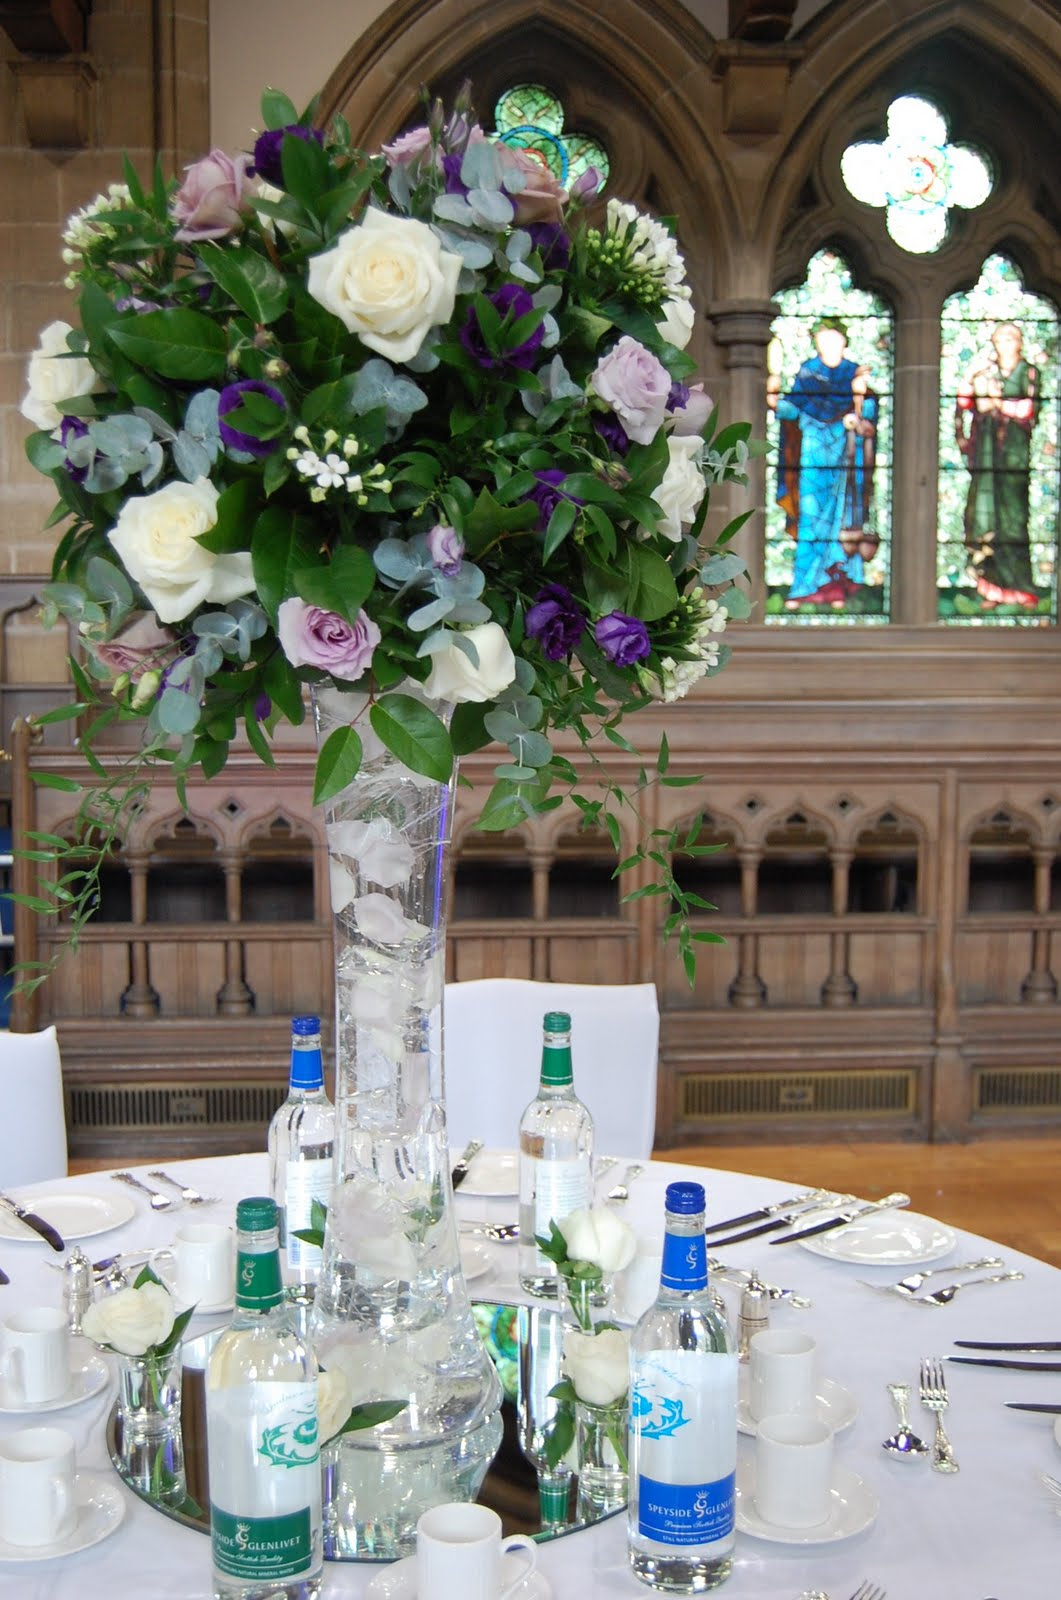 Mood Flowers Glasgow Wedding : Mood flowers university of glasgow chapel